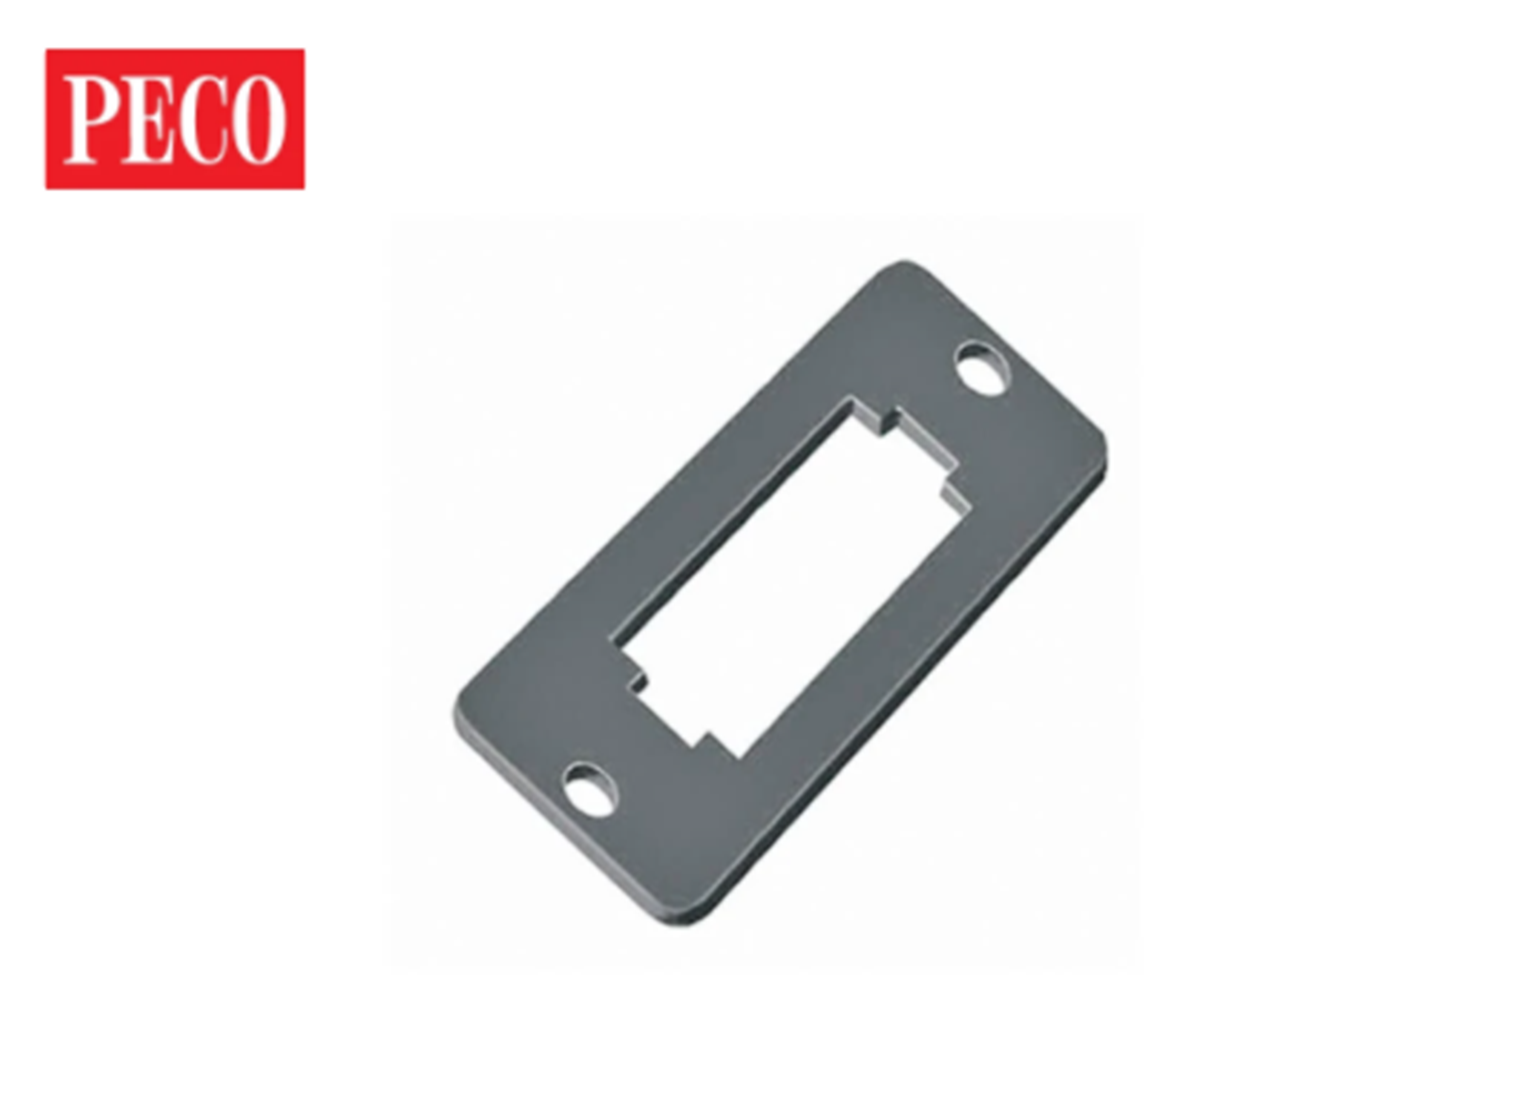 PL28 6 Switch Mounting Plates for PL26